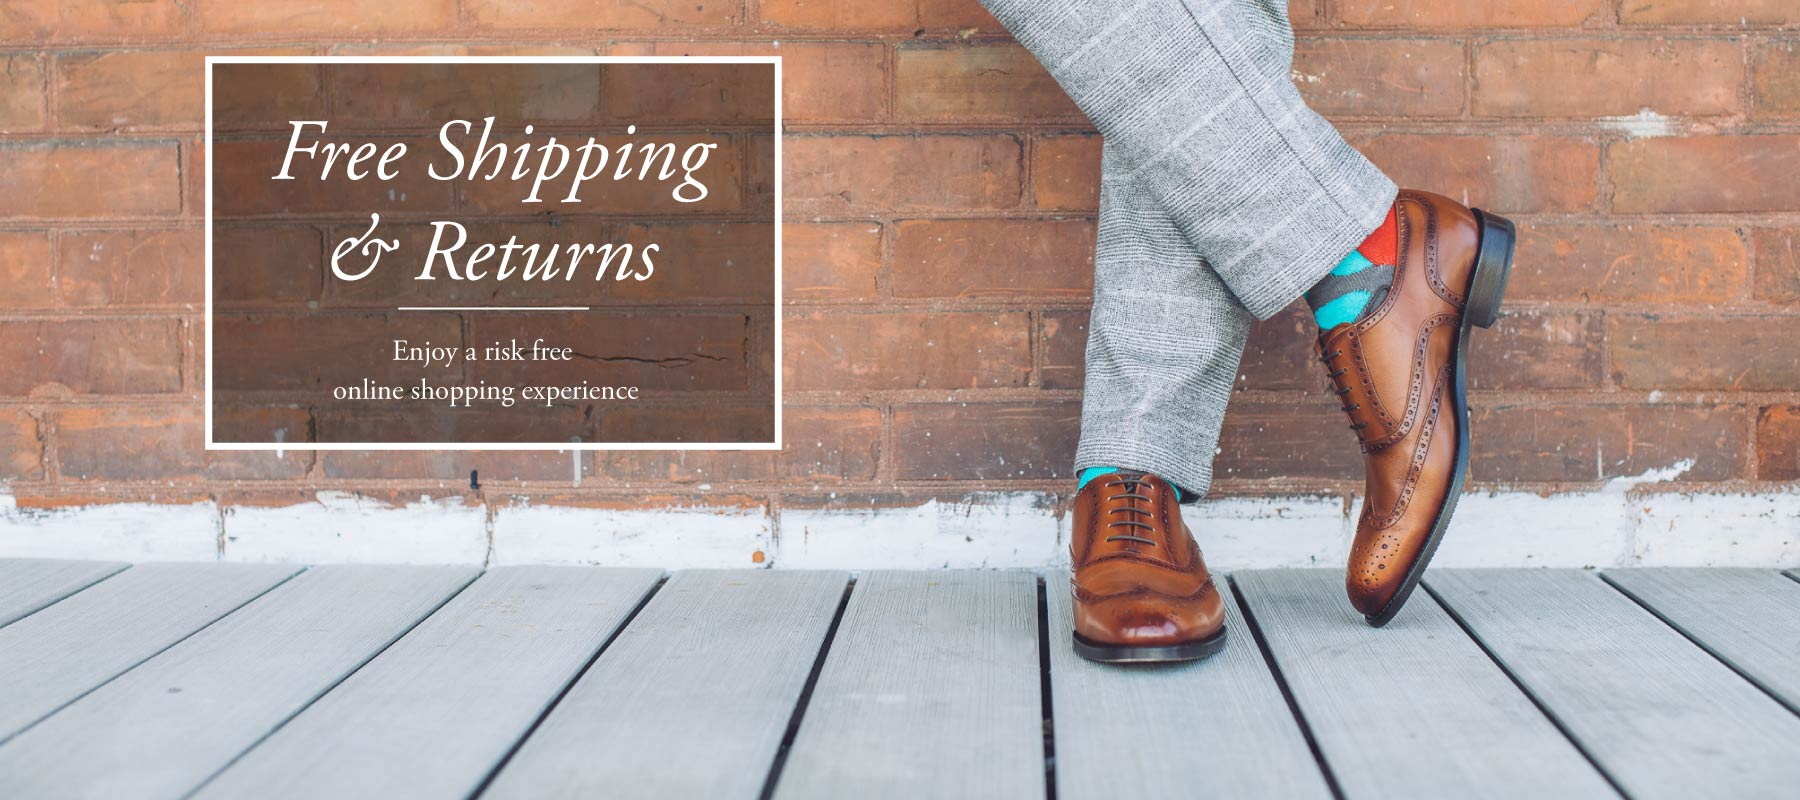 Hartt offers free shipping and returns on all goodyear welt dress shoes and boots.